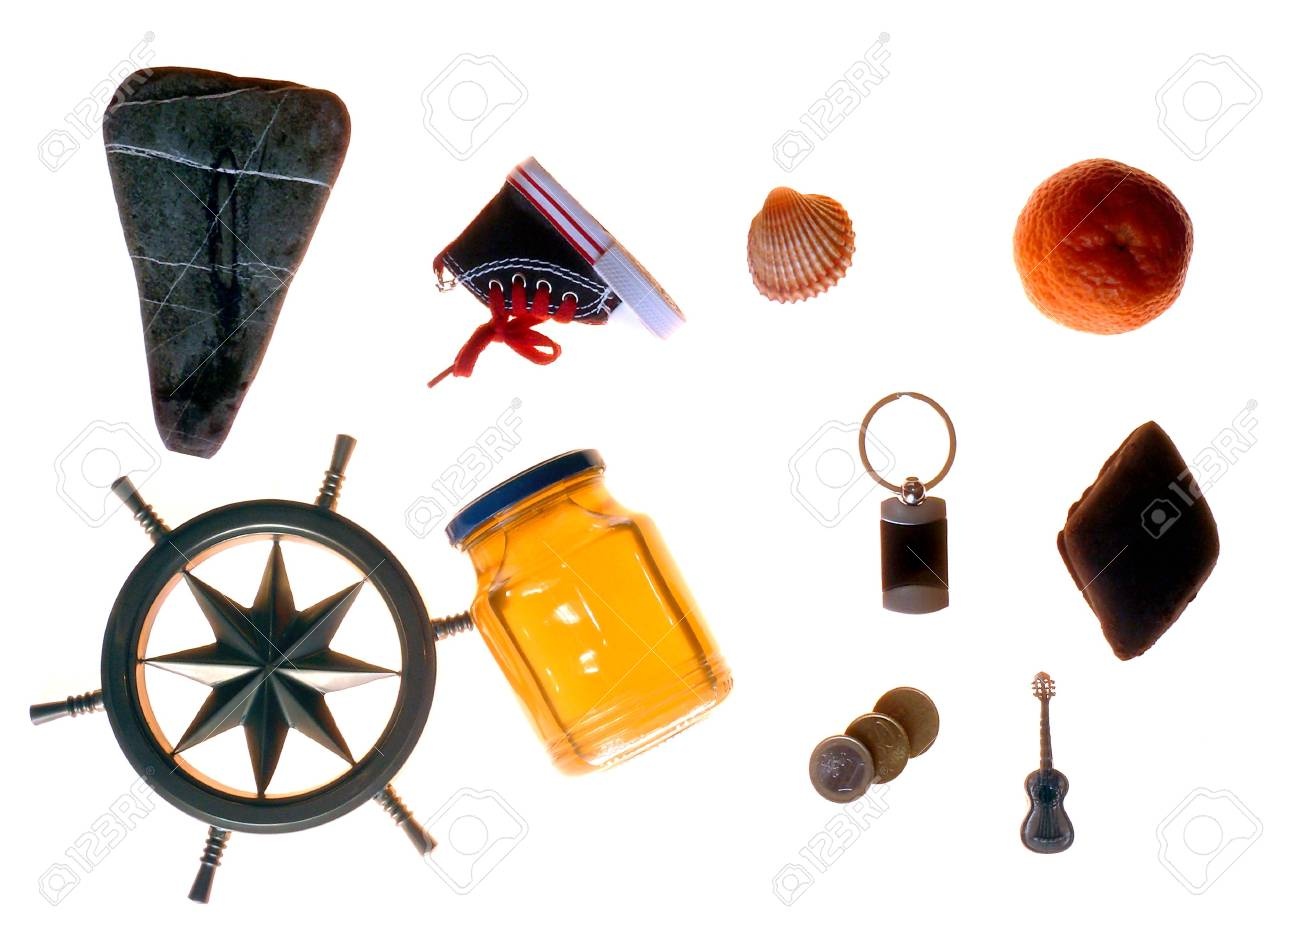 Fanciful close-up of various objects isolated on white background Stock Photo - 4278311